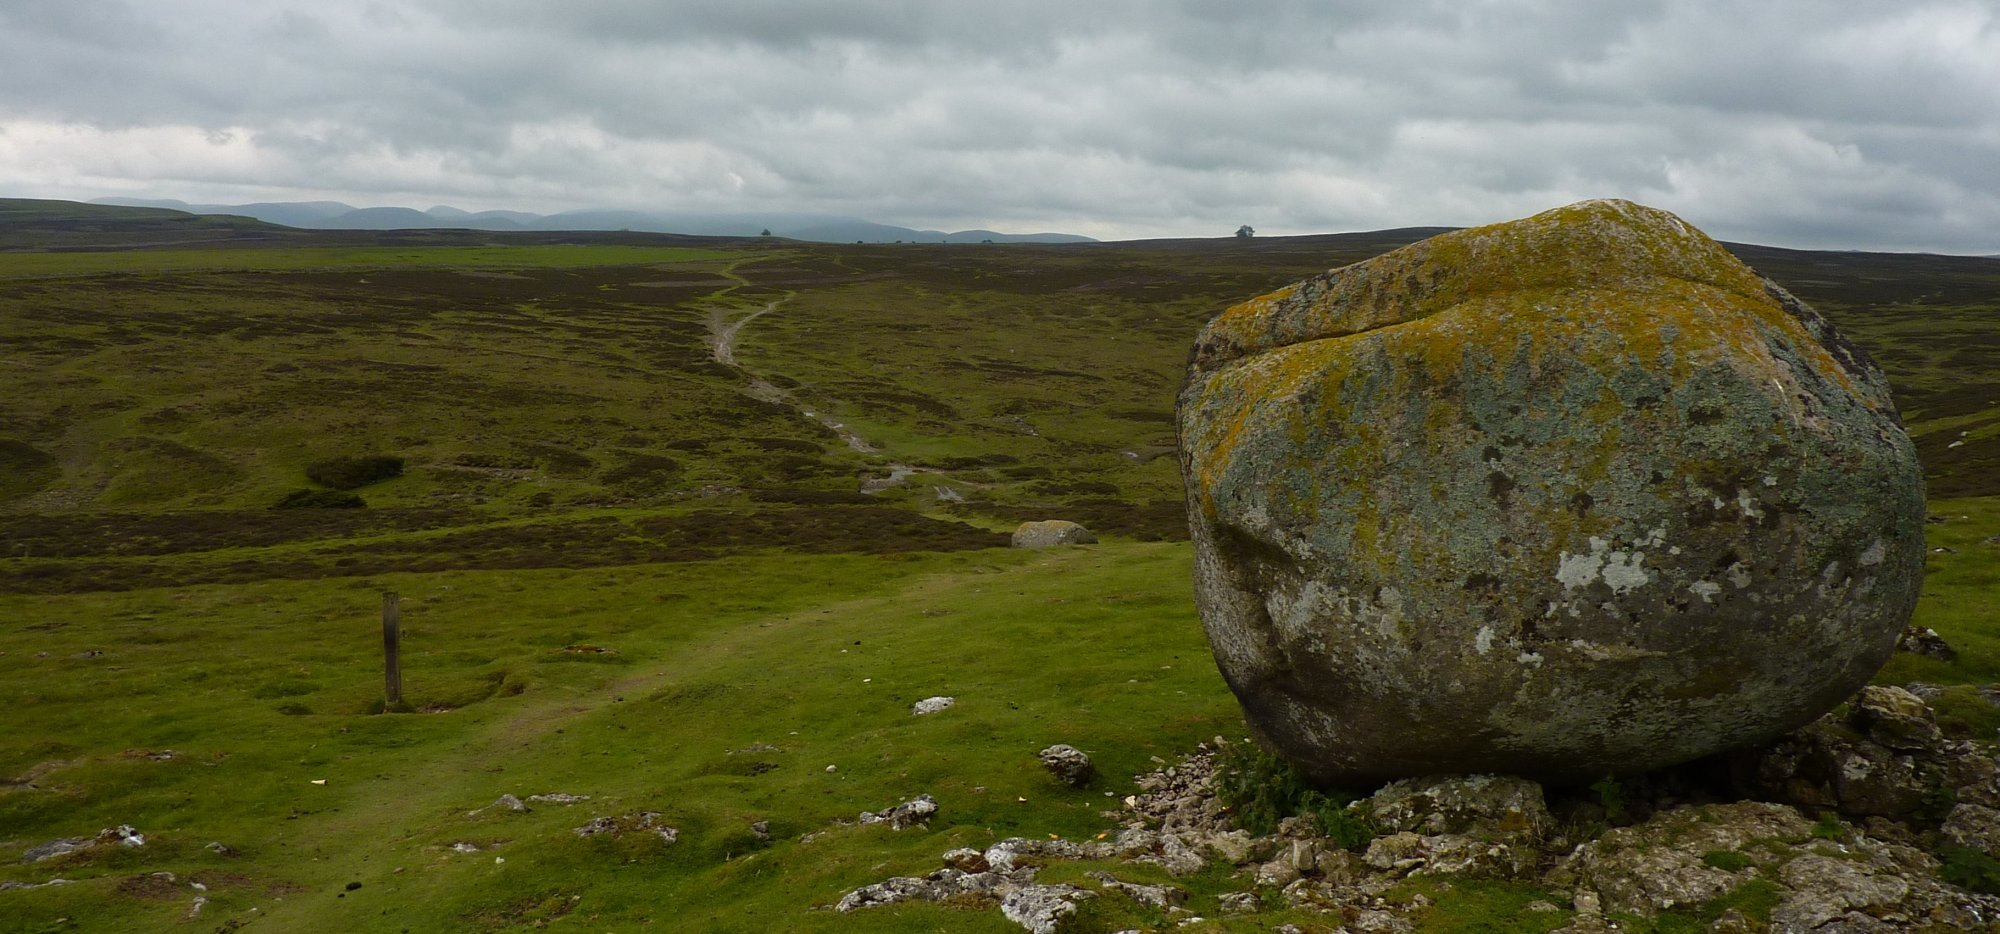 Granite erratics on Crosby Ravensworth